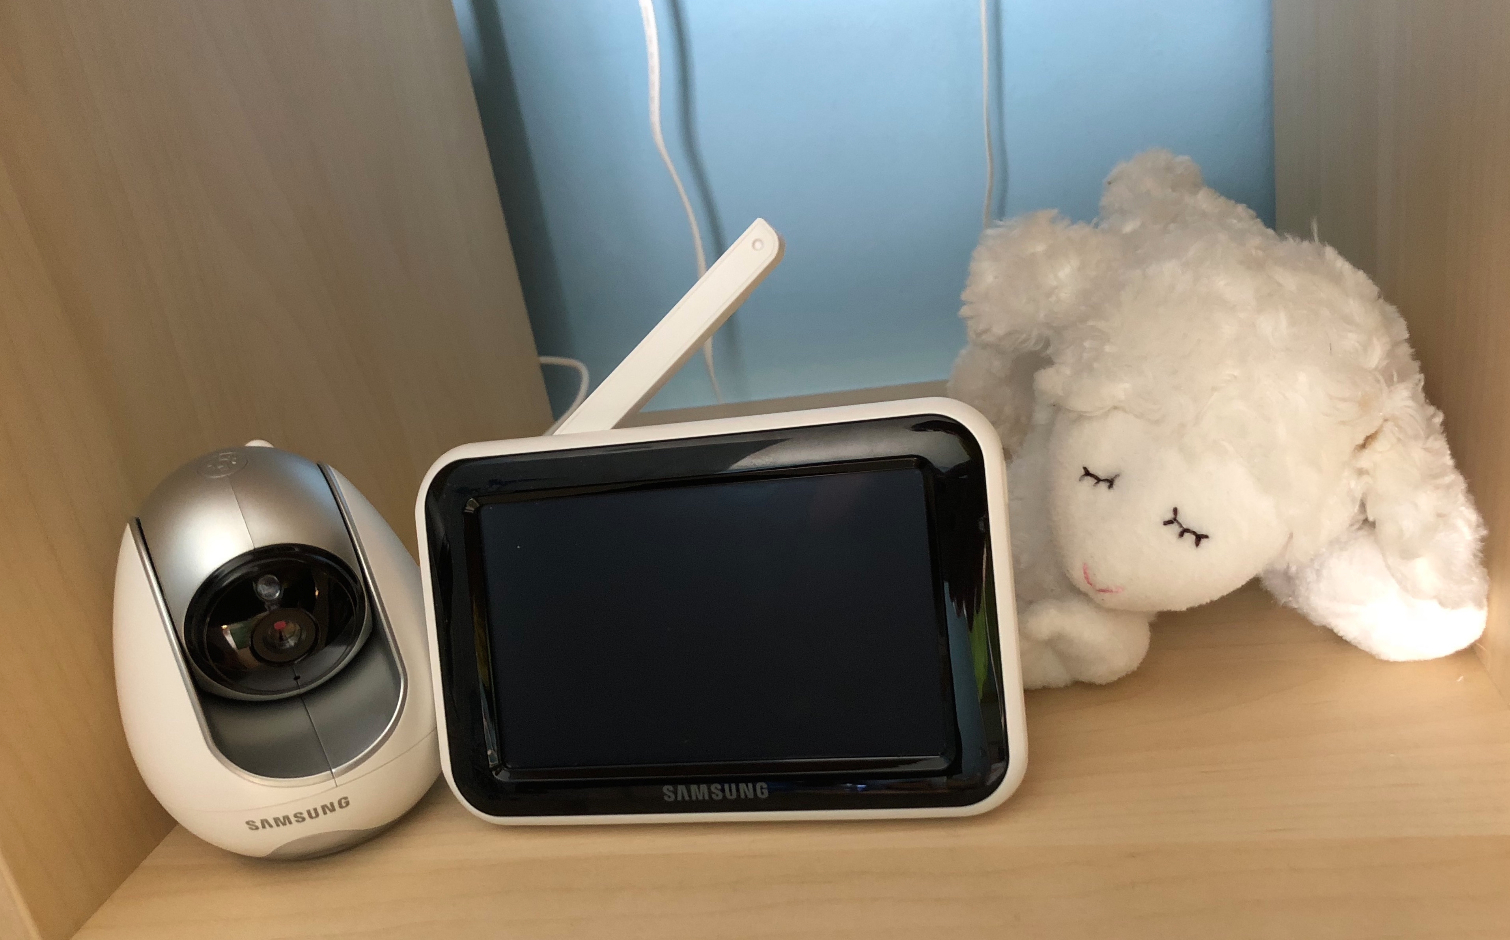 Samsung Wisenet BabyView SEW-3053W Review: Baby Monitor Has